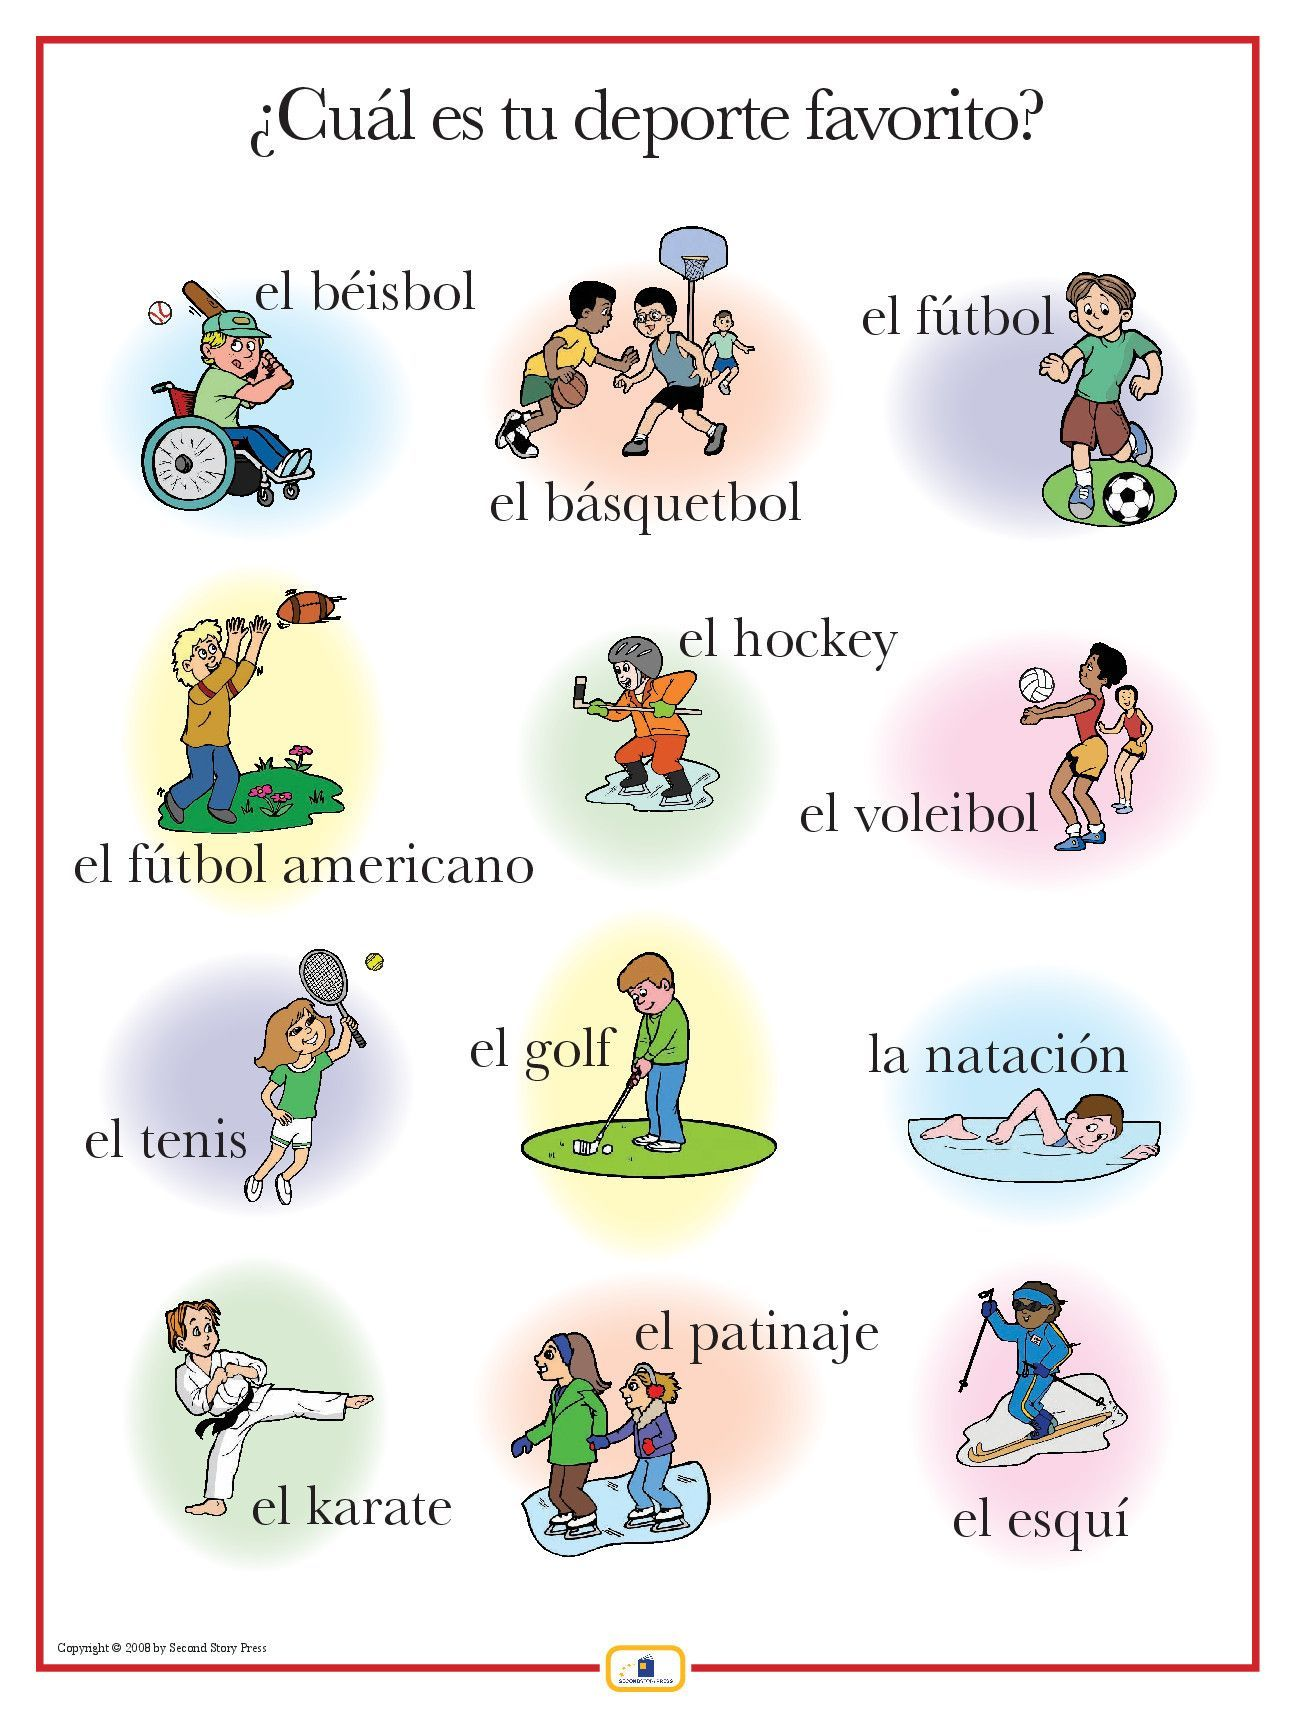 spanish sports poster tools for school learning spanish for kids learning italian. Black Bedroom Furniture Sets. Home Design Ideas